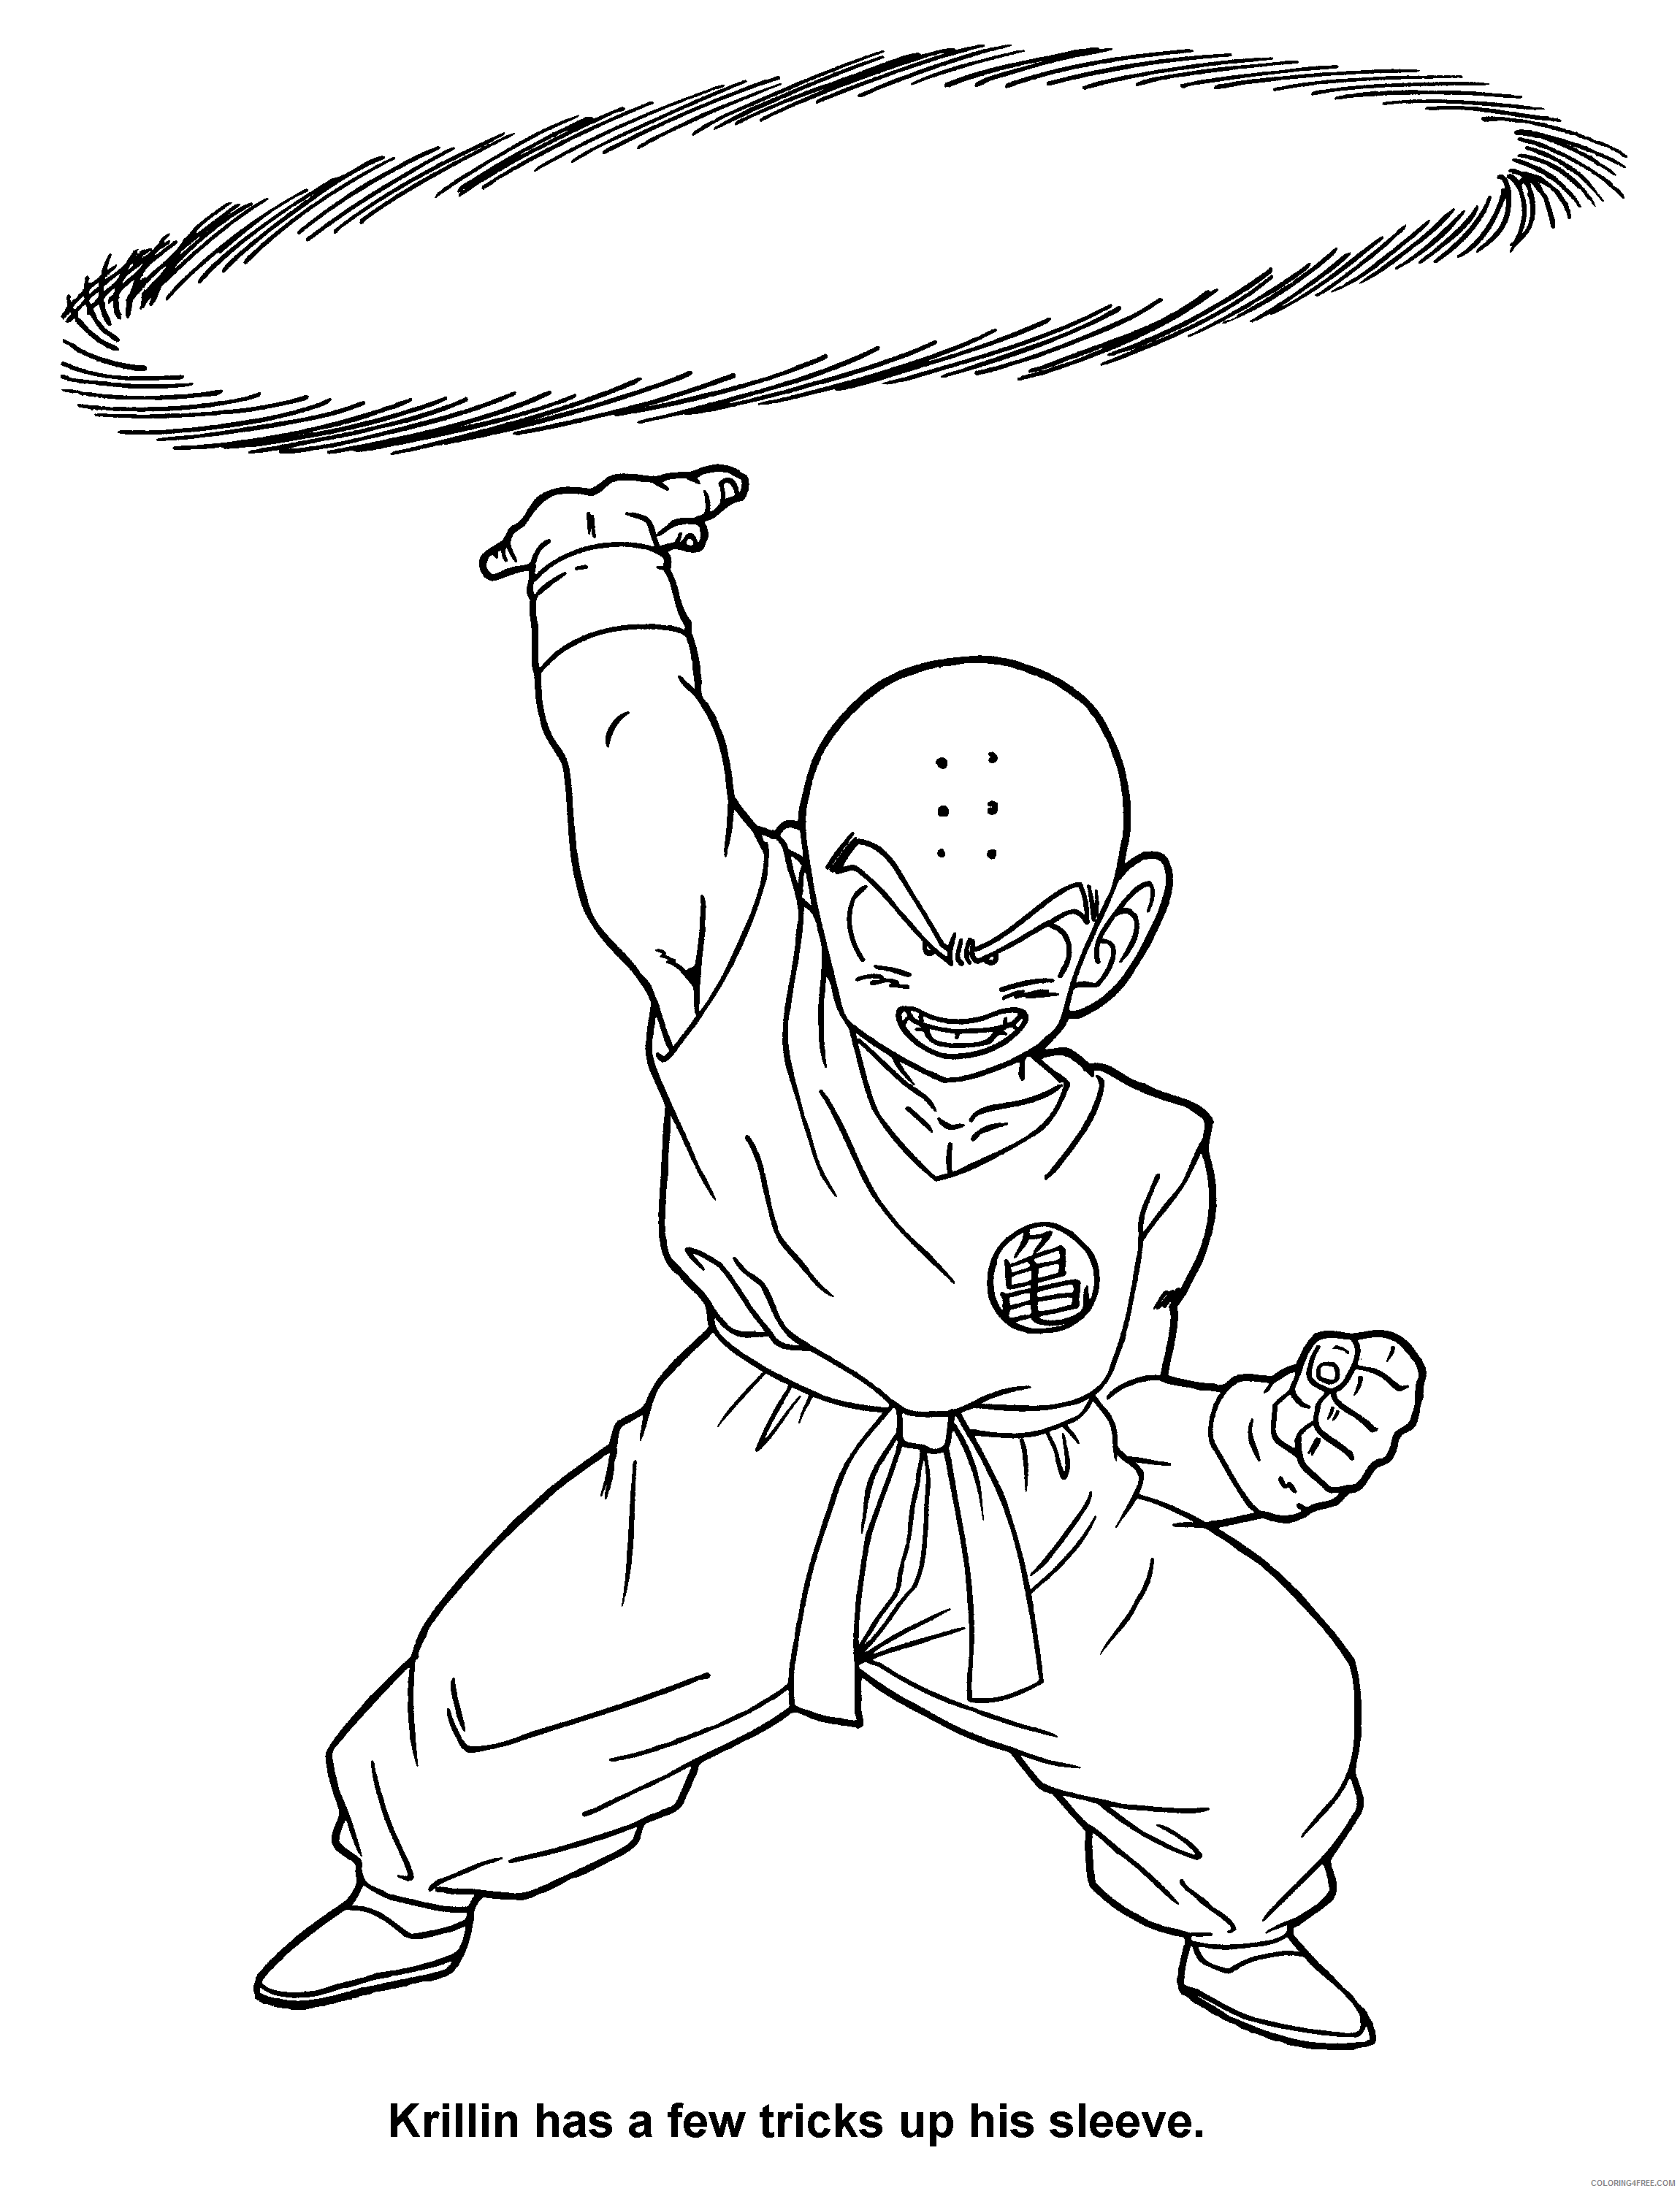 034 dragon ball z krillin has a few tricks up his sleeve Printable Coloring4free